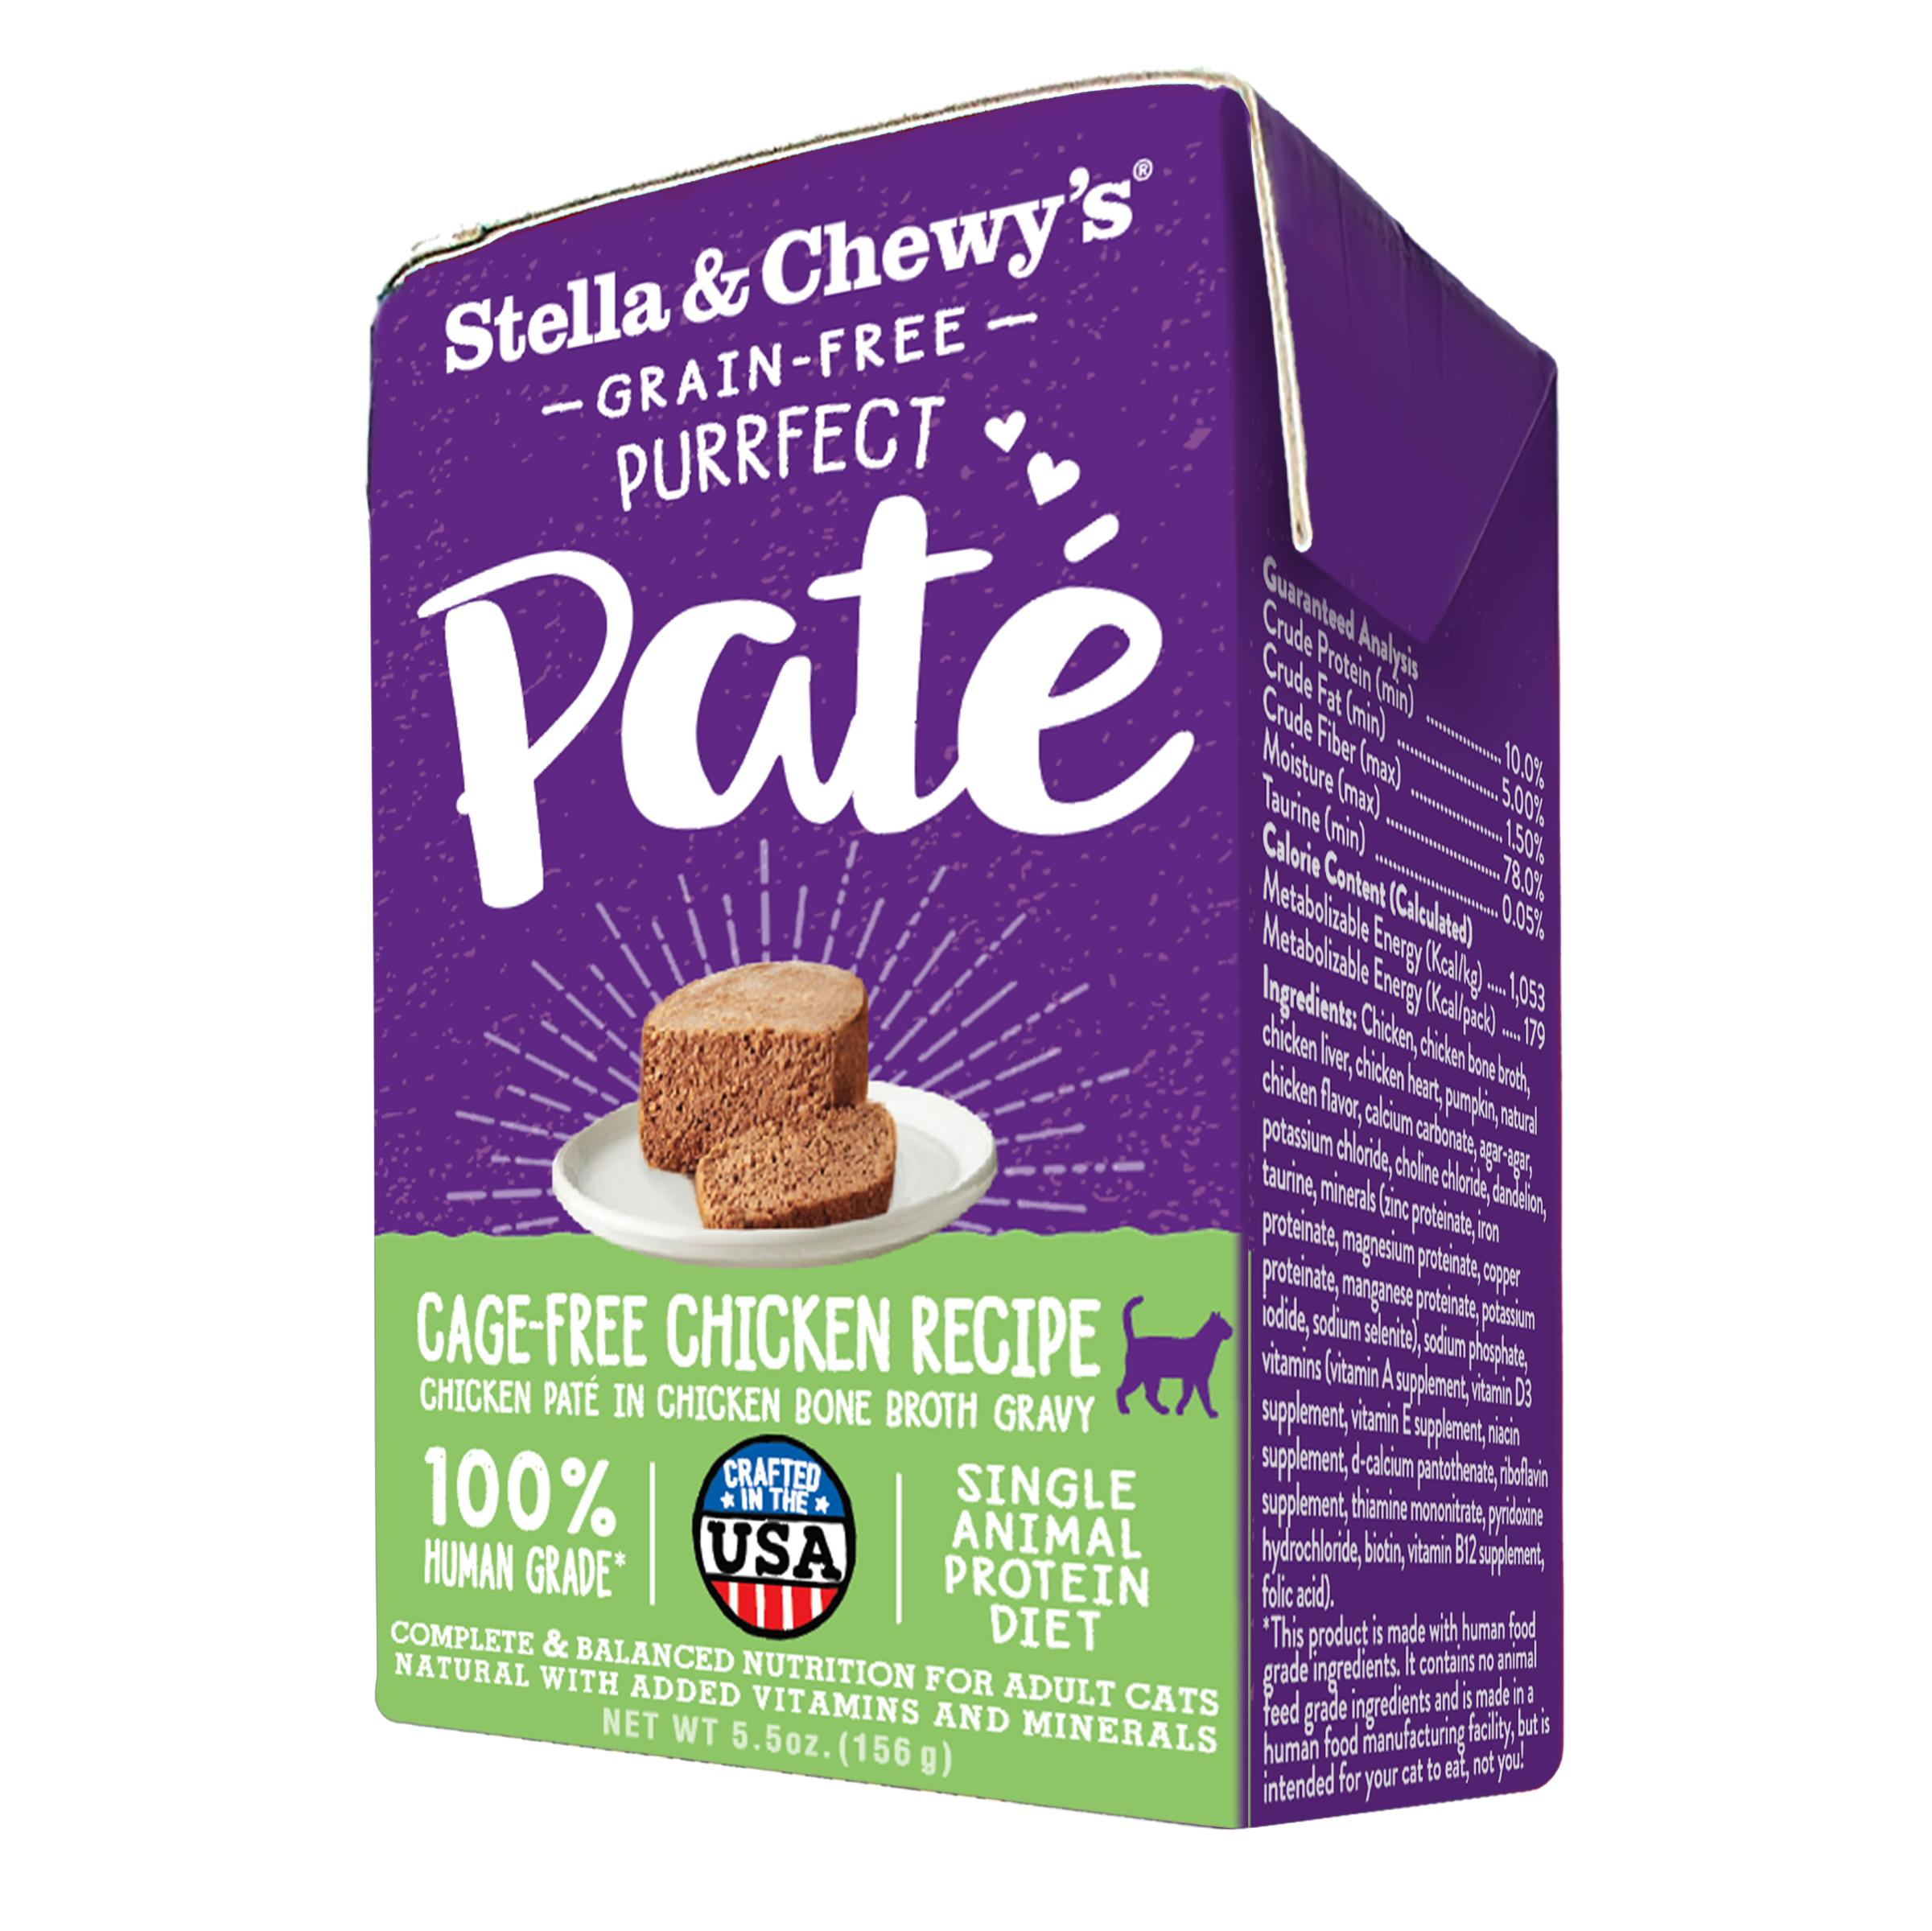 Stella & Chewy's Purrfect Paté Cage-Free Chicken Recipe Wet Cat Food, 5.5-oz (Size: 5.5-oz) Image